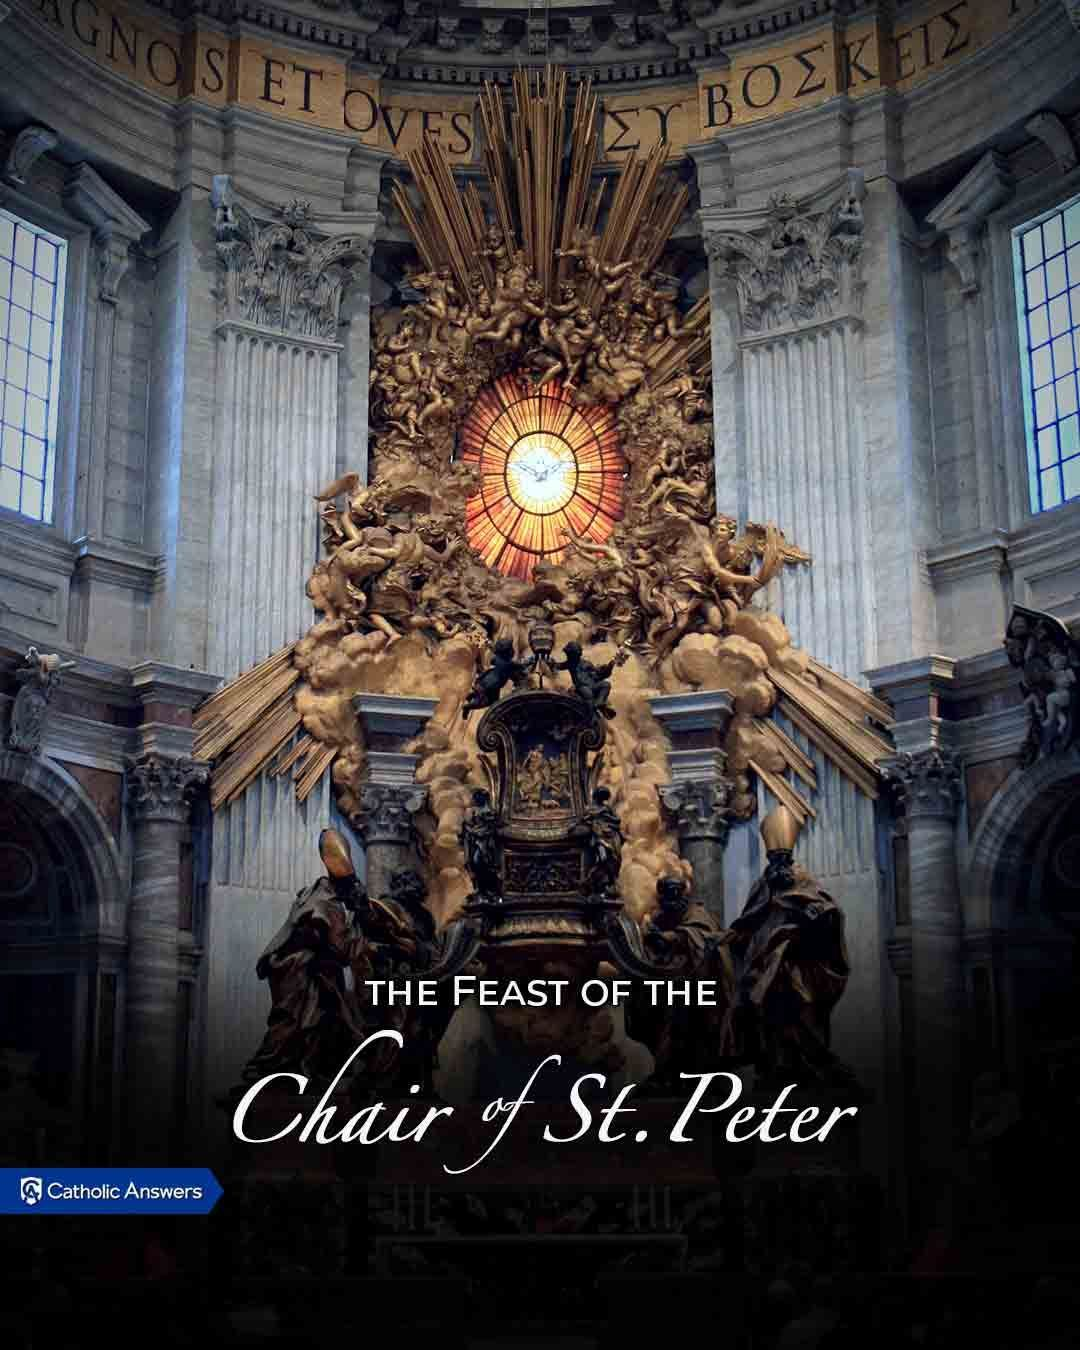 February 22 The Feast of the Chair of St. Peter. The